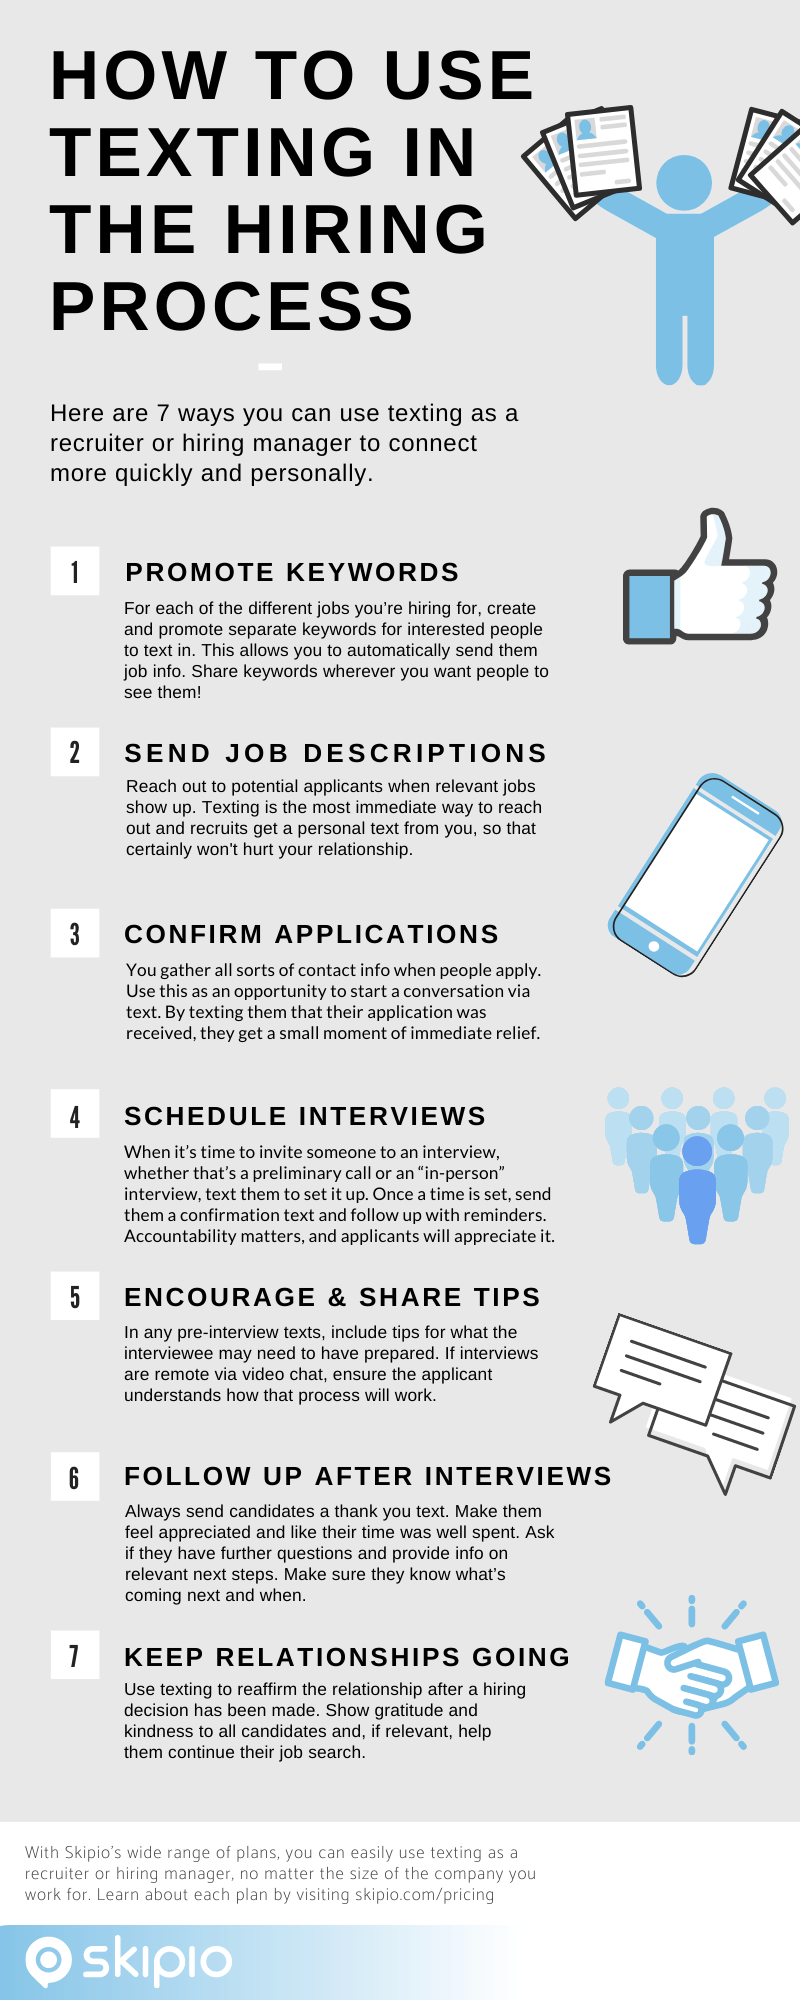 Infographic based on text from the post about how to use texting as a recruiter or hiring manager